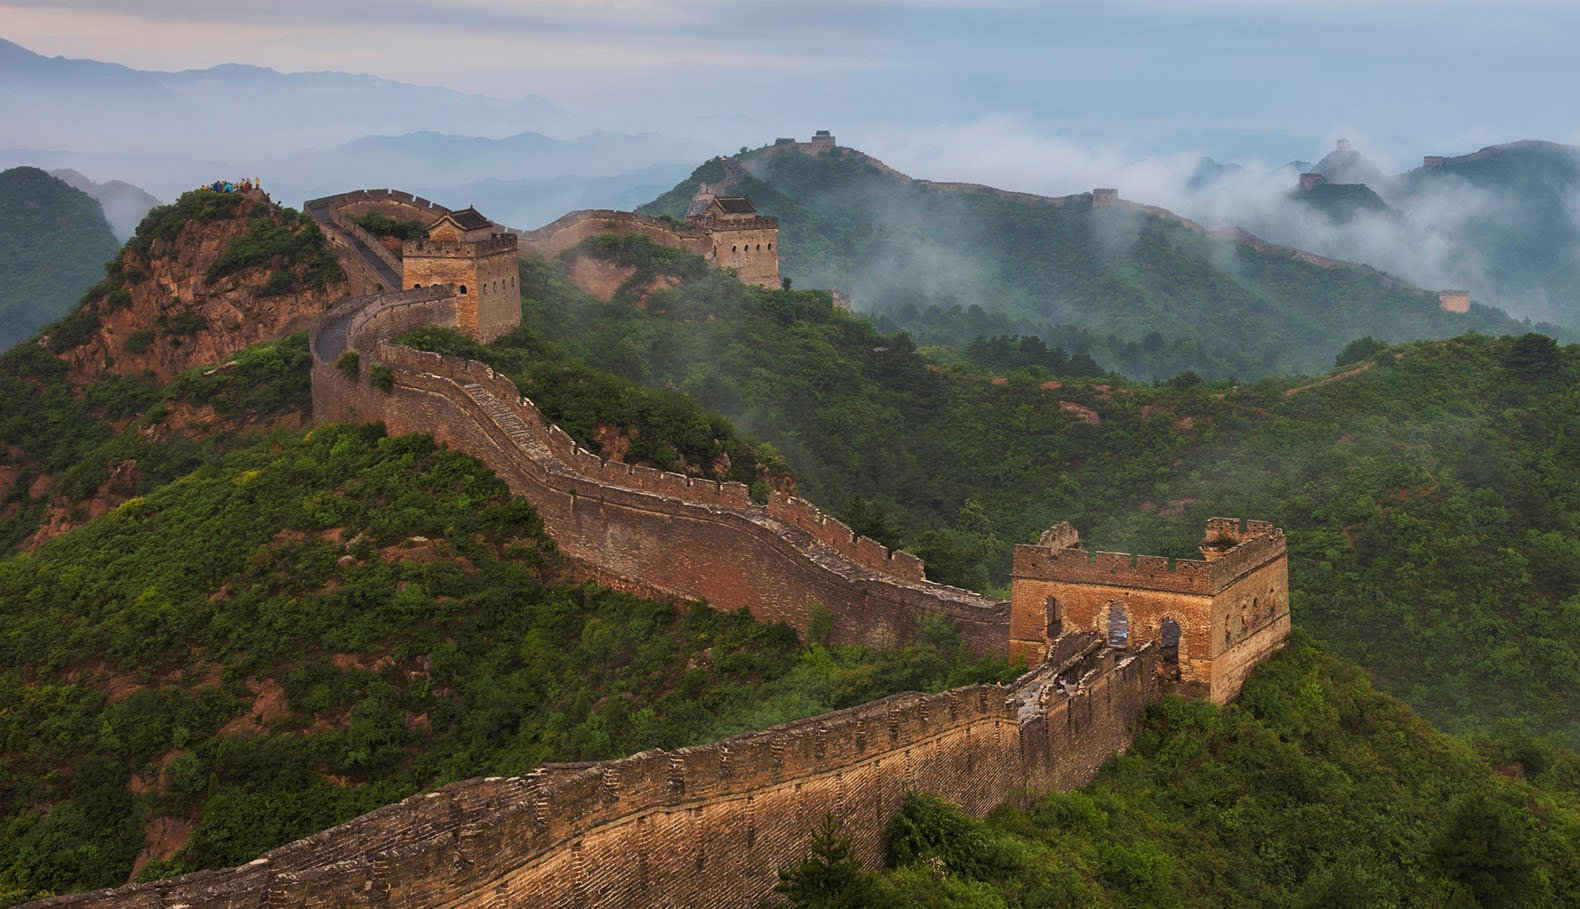 Great Wall~Nothing can prepare you for the sight that awaits you at the Great Wall. Join us for dinner atop the wall and take in one of the most memorable sunsets you will ever witness.